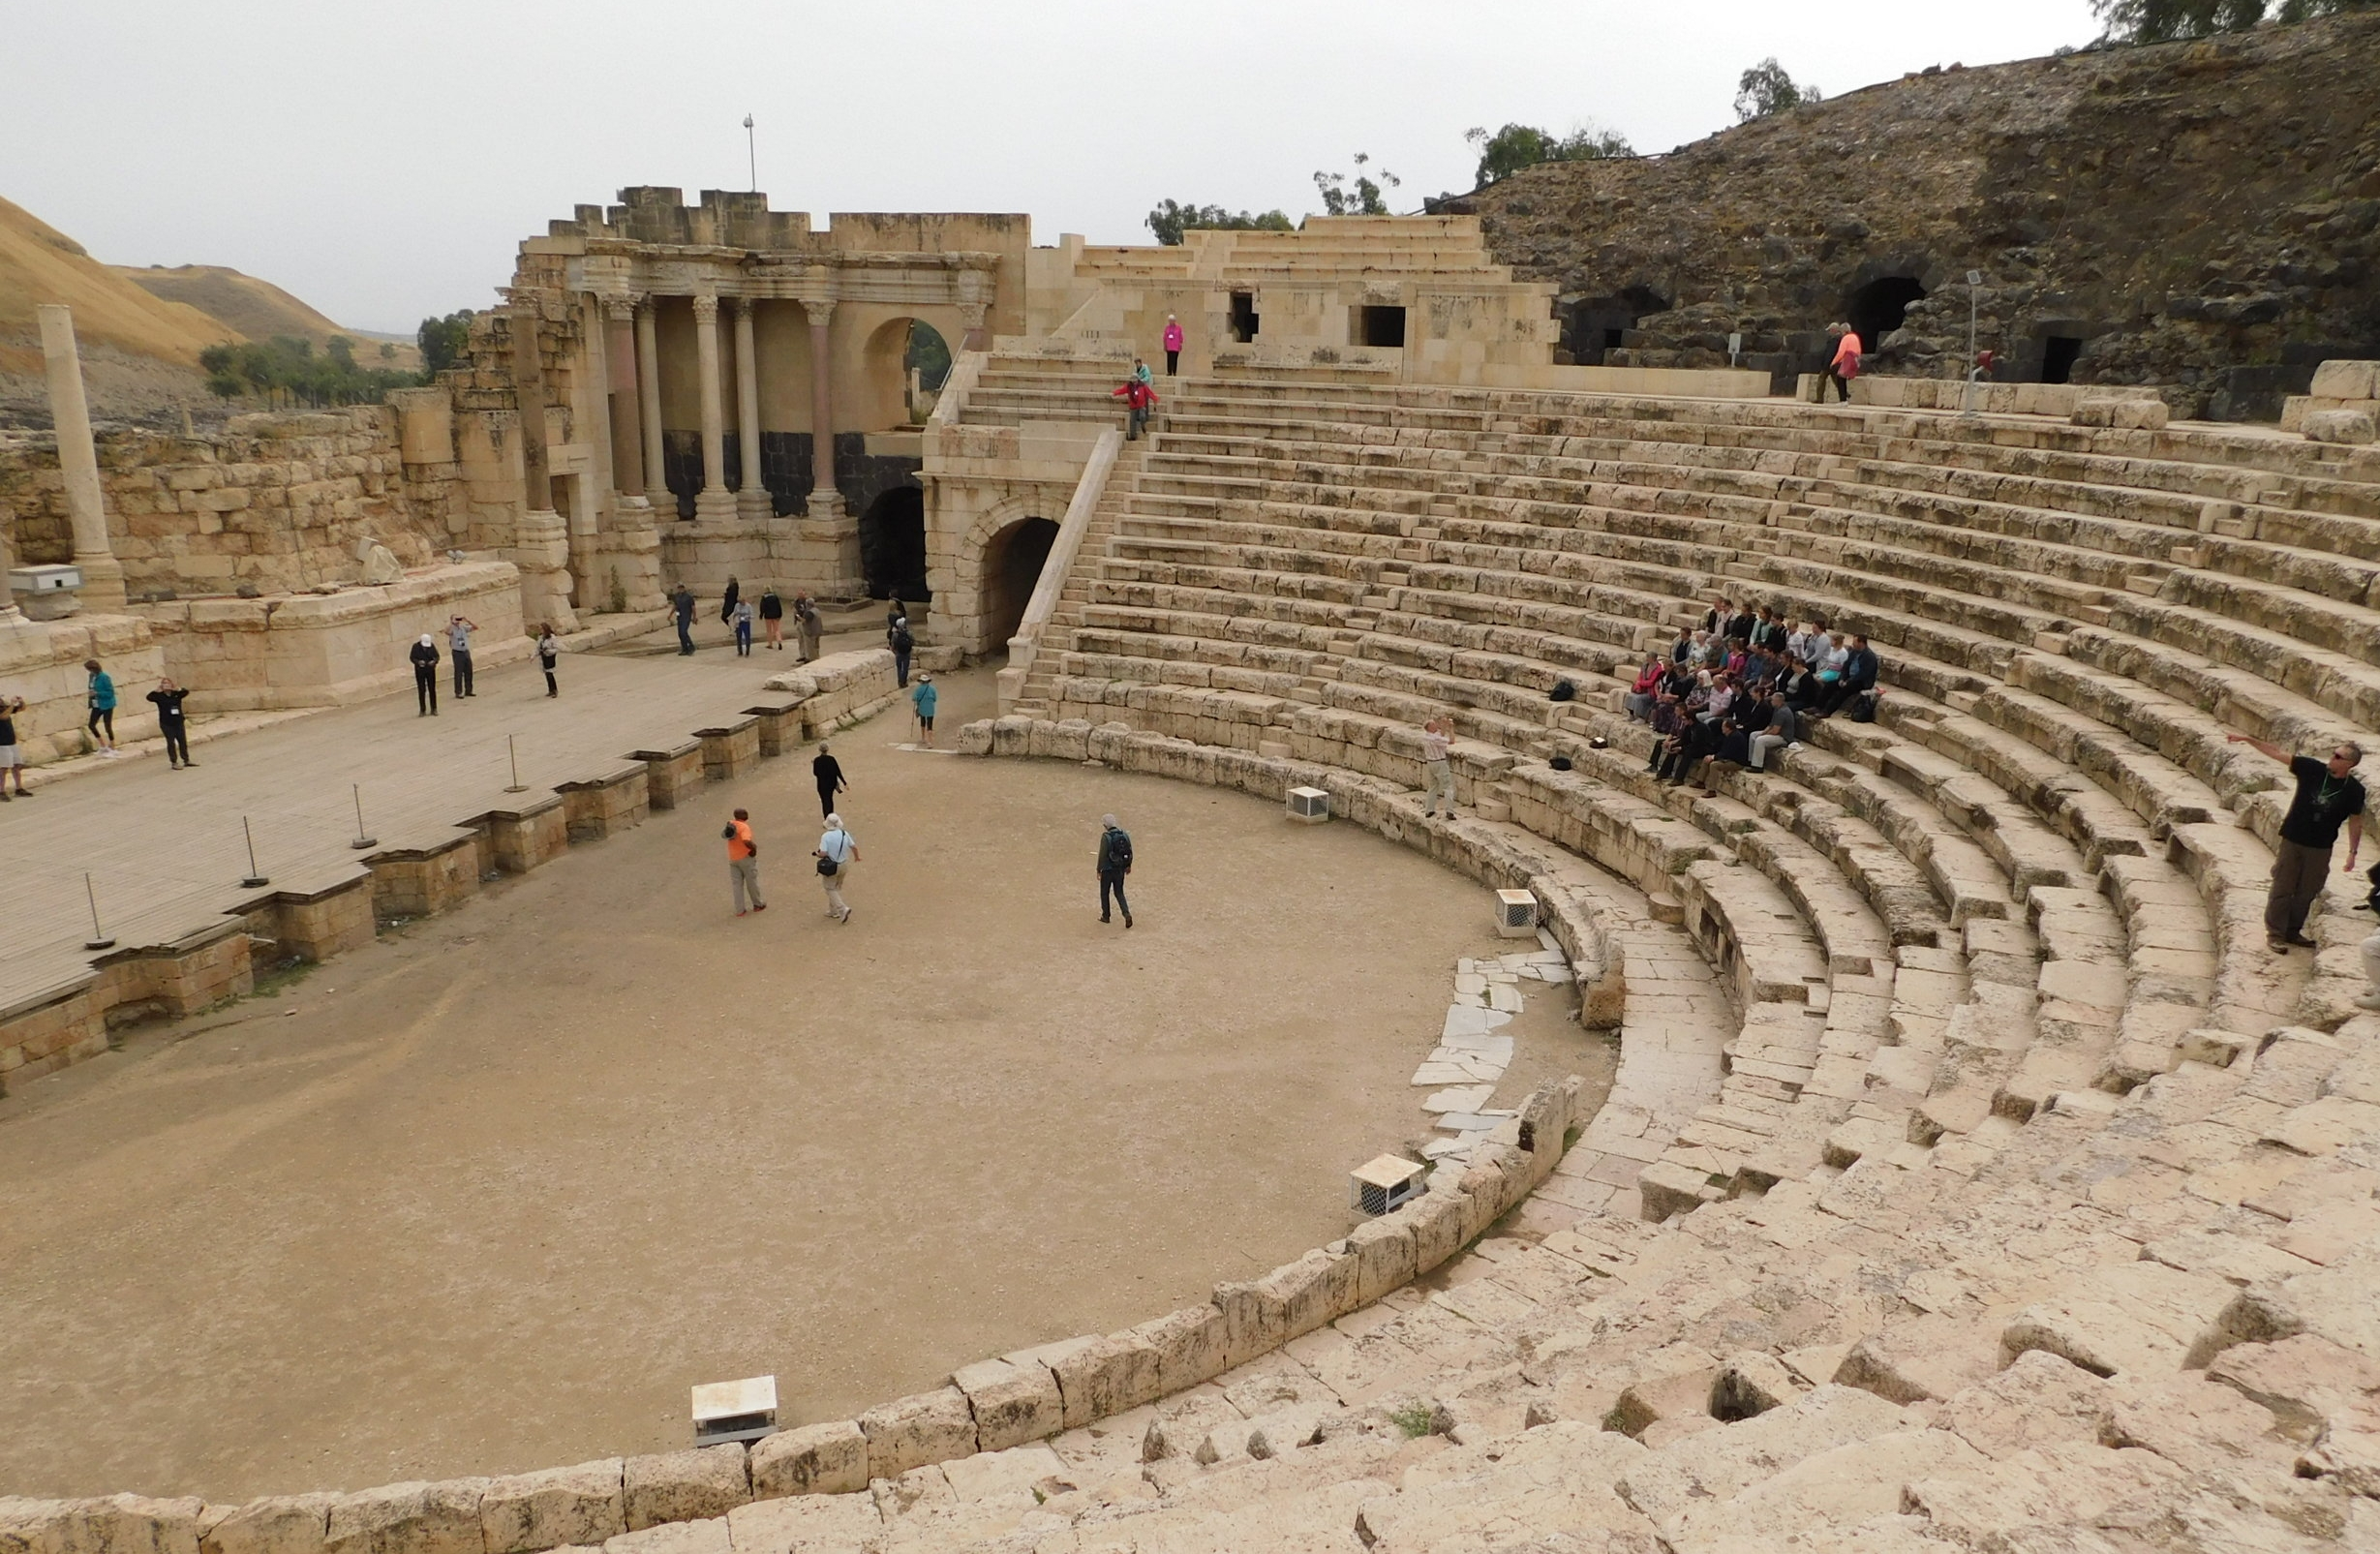 Amphitheatre at Beit She'an, a Philistine area.